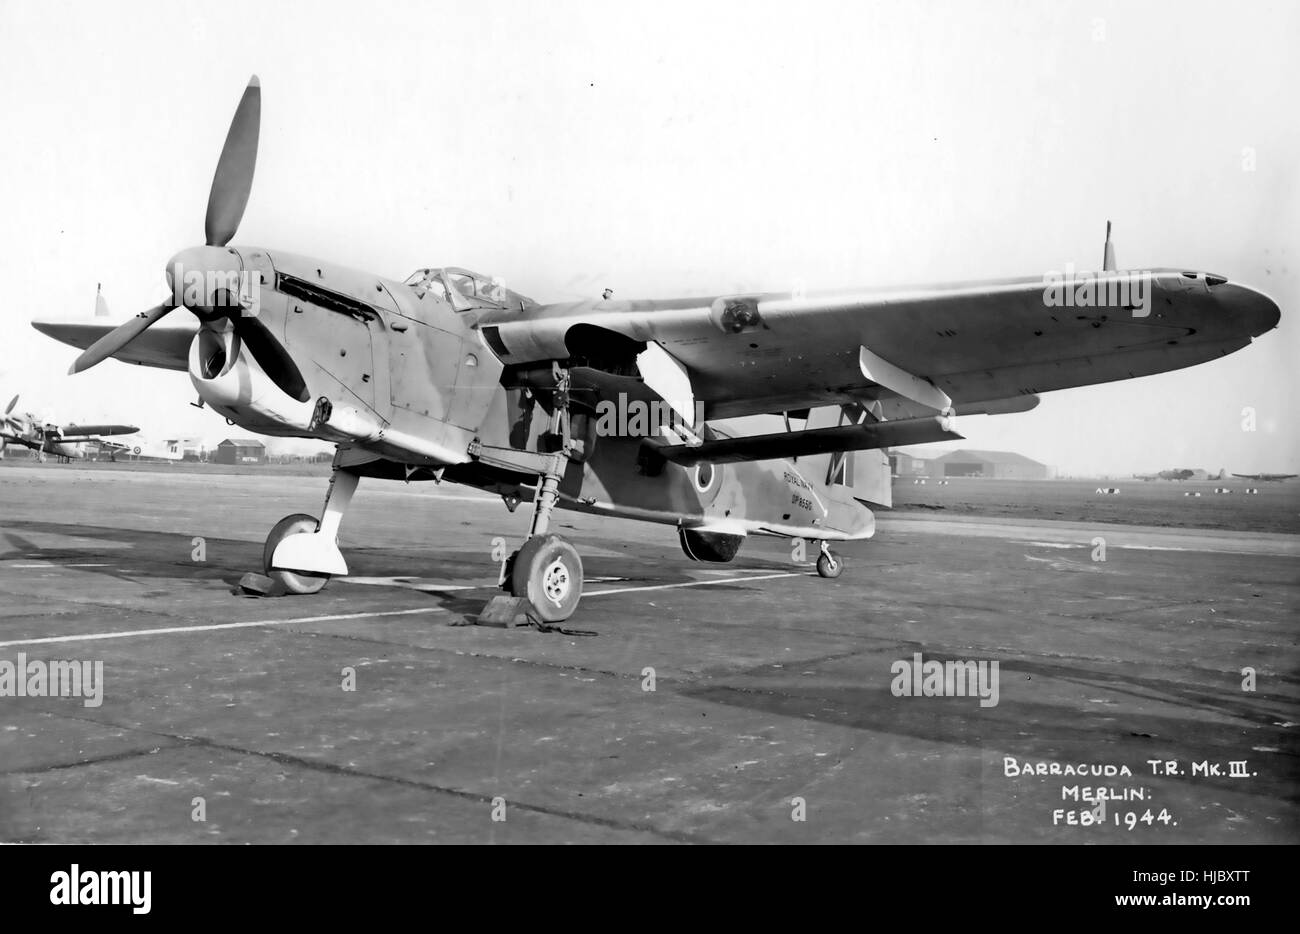 FAIREY BARRACUDA T.R. Mk III with Merlin engine in February 1944. The blister under the rear fuselage contains the - Stock Image